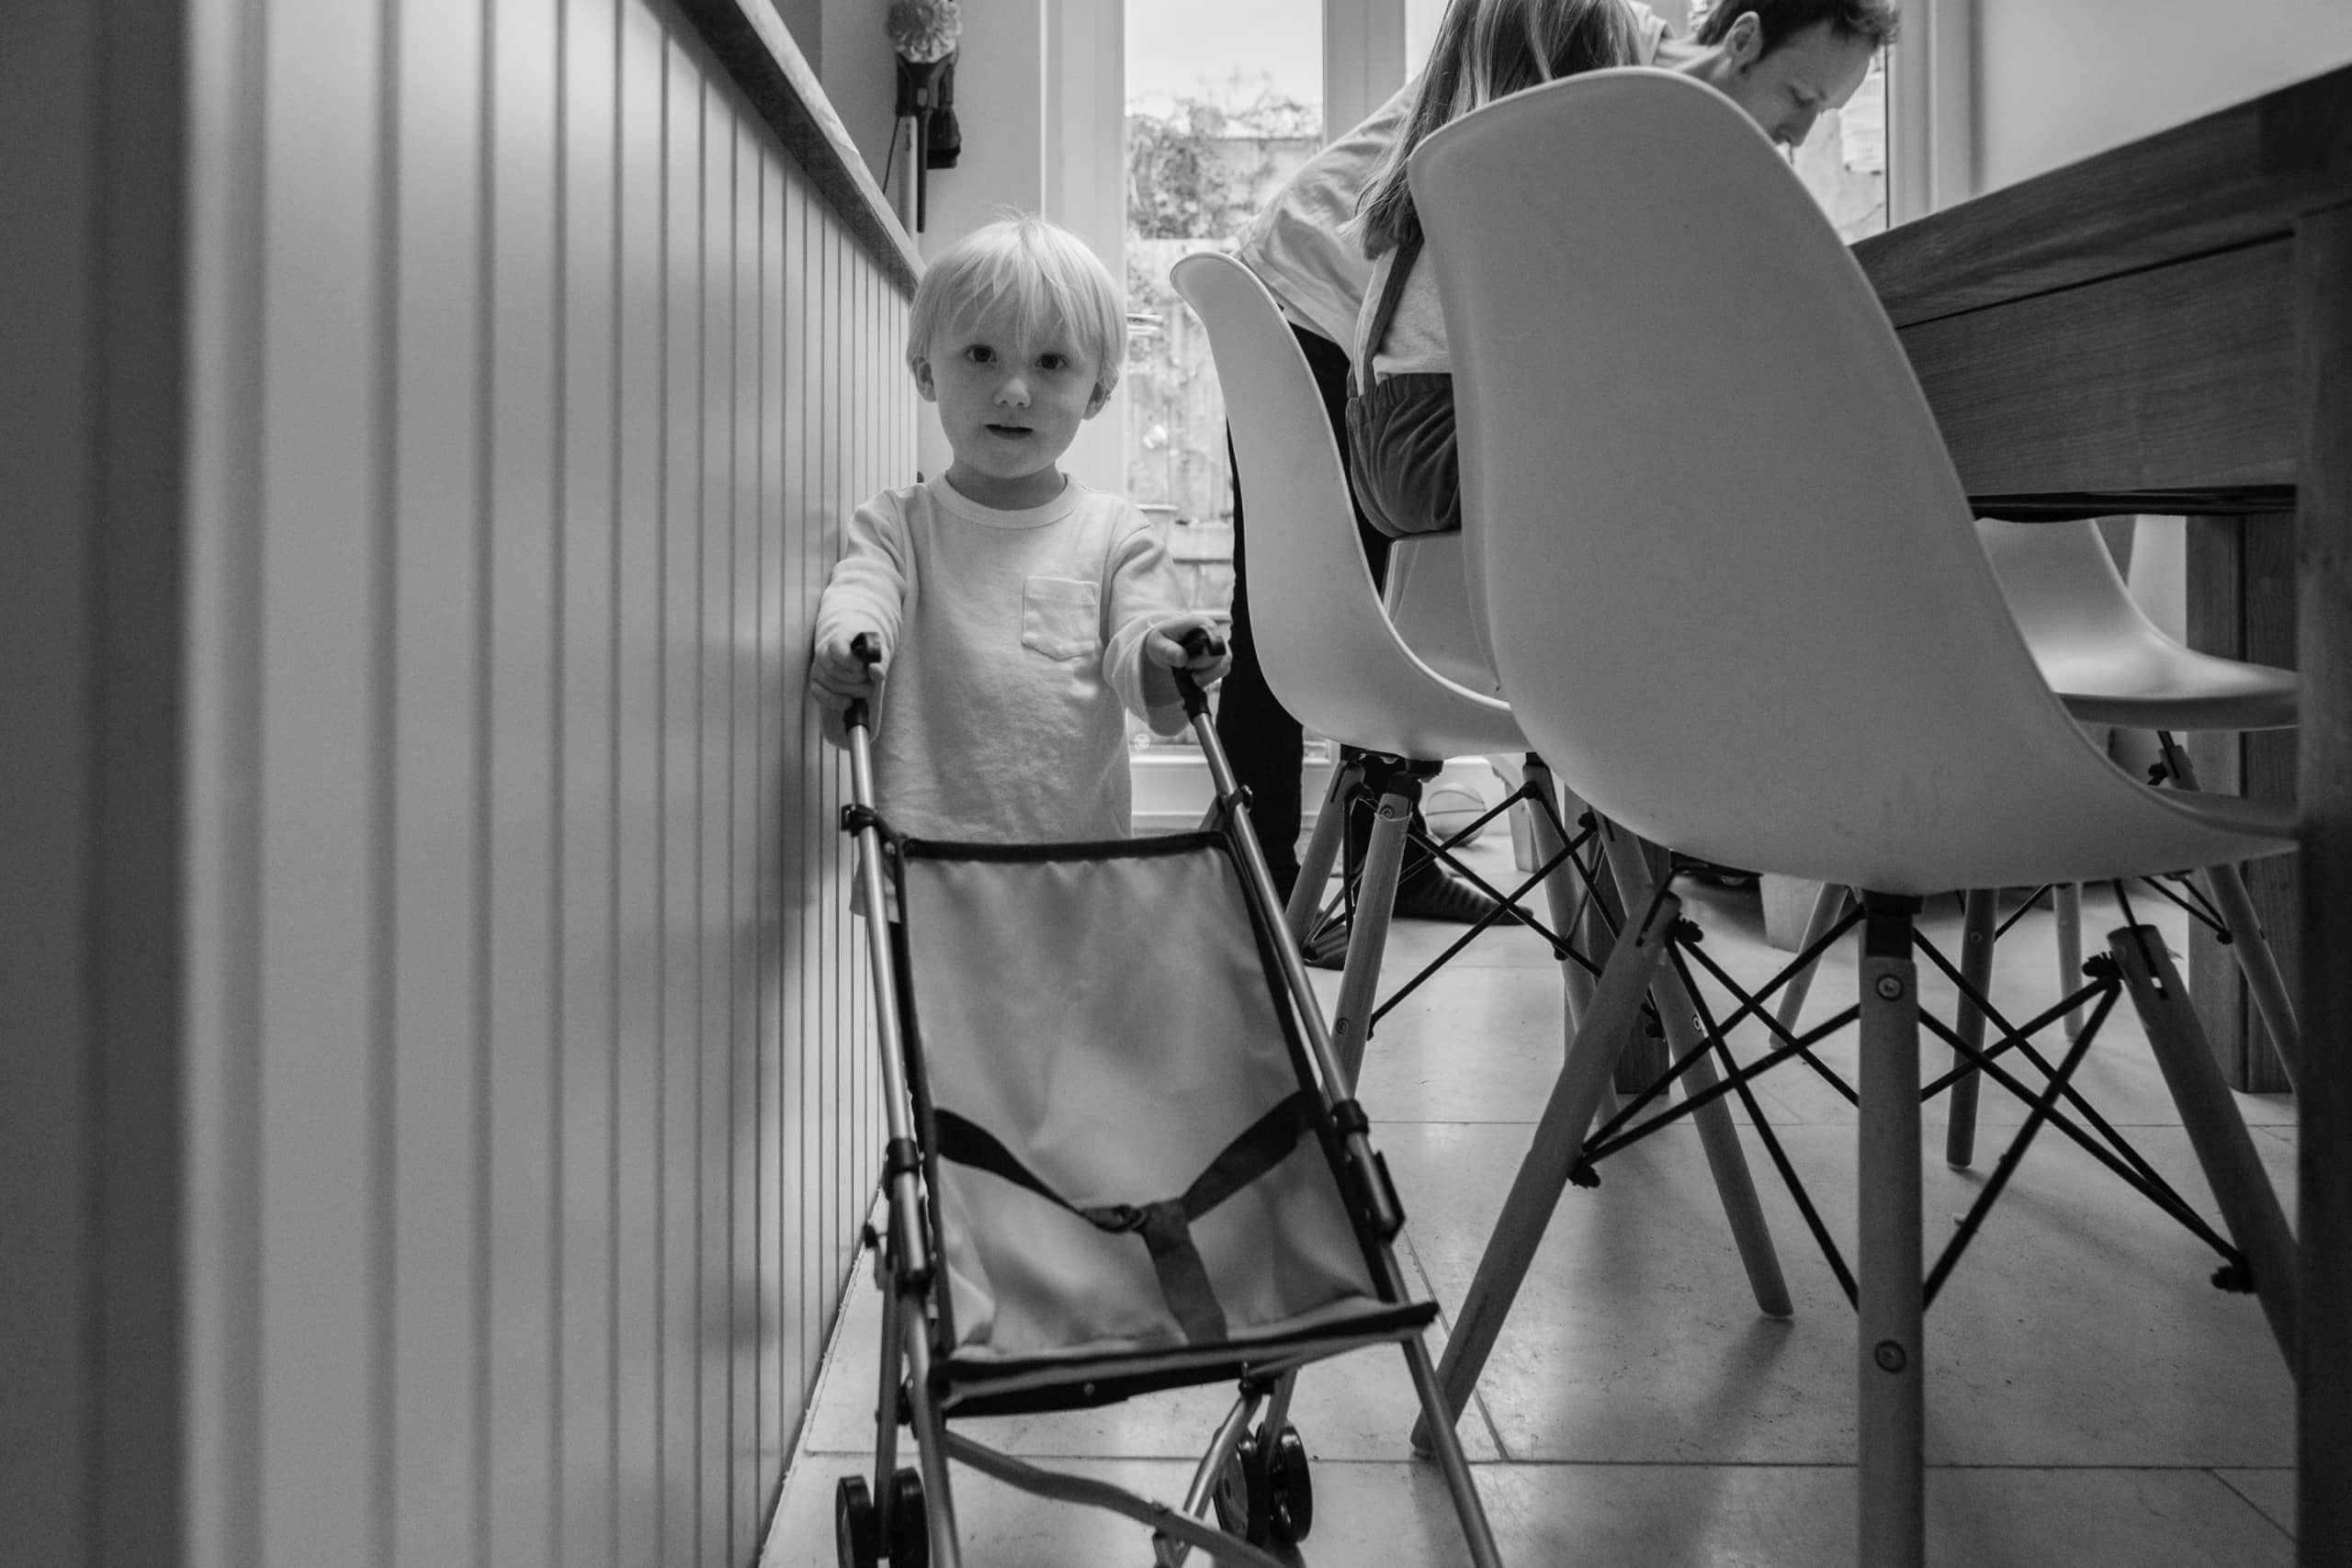 Young boy plays with push chair